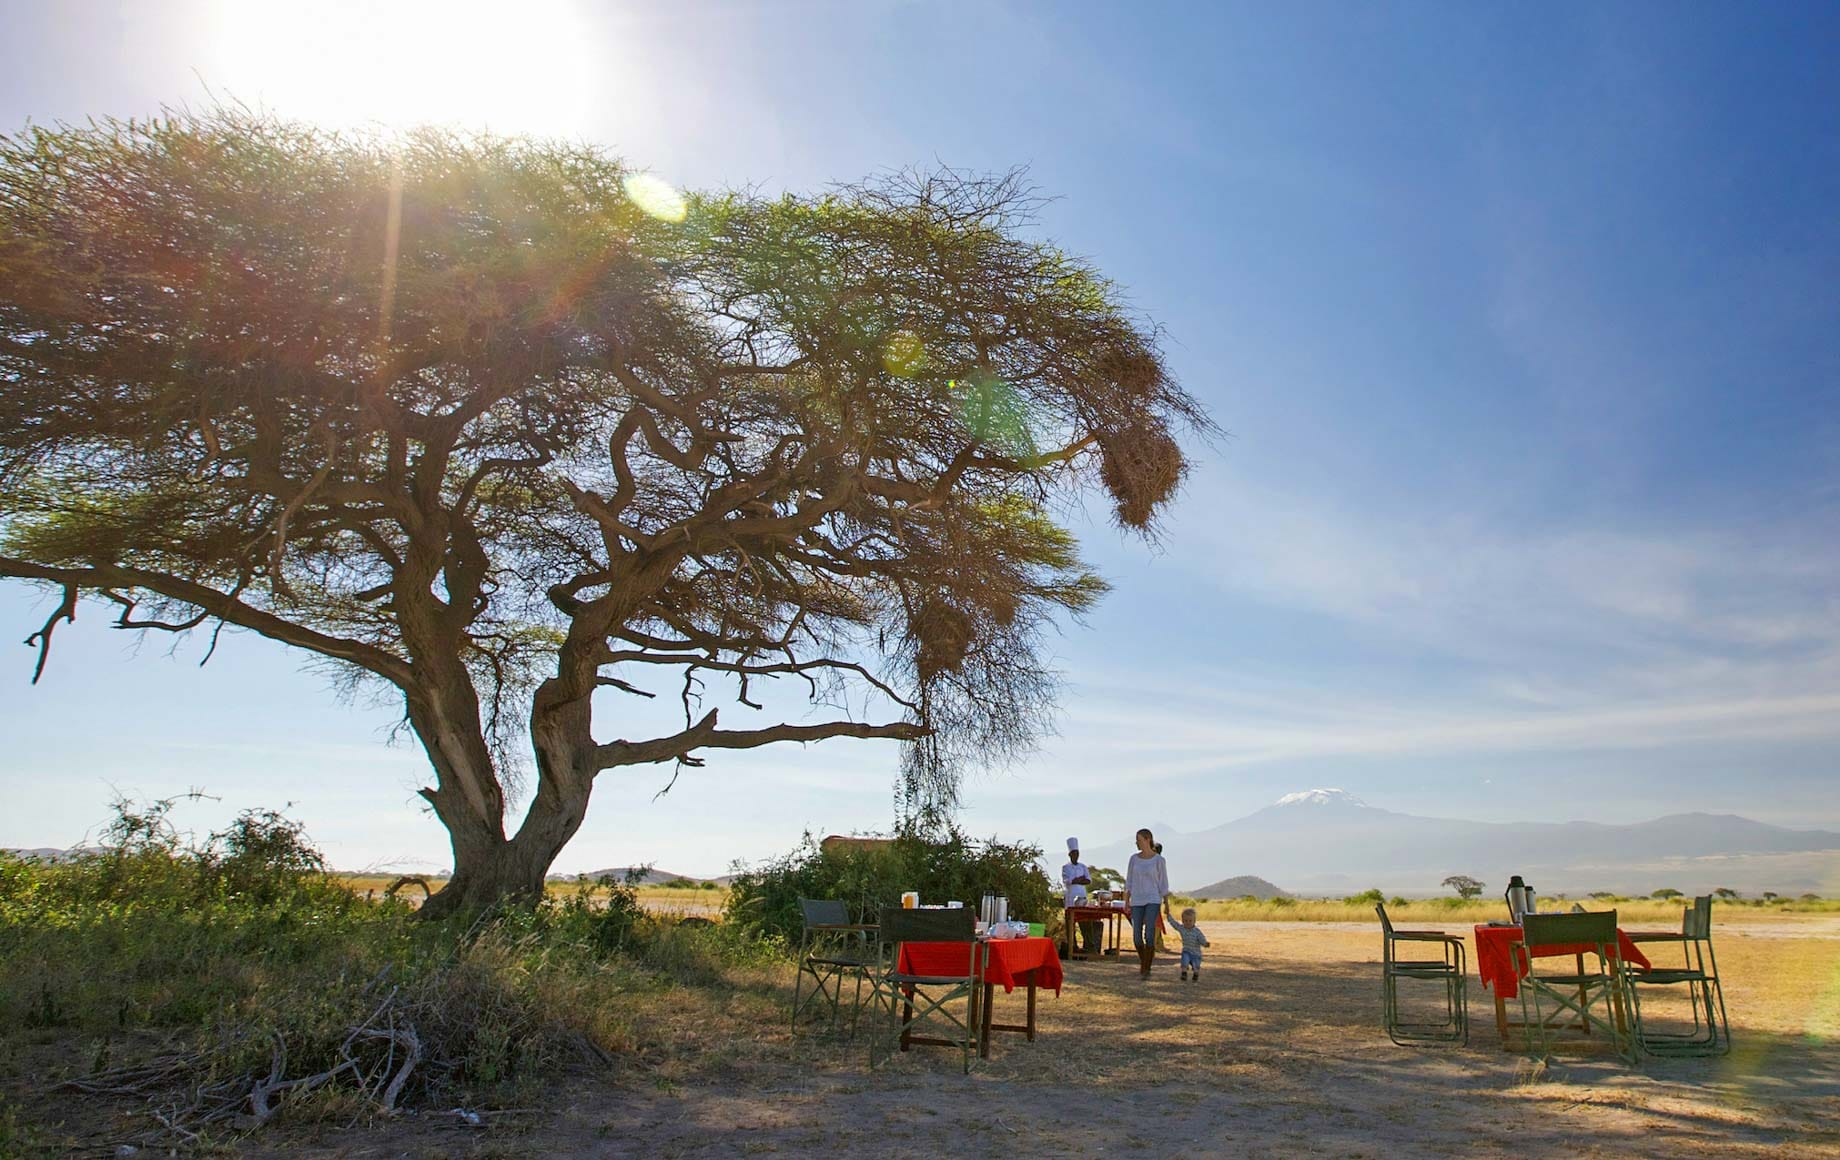 Arusha is a city in East Africa's Tanzania